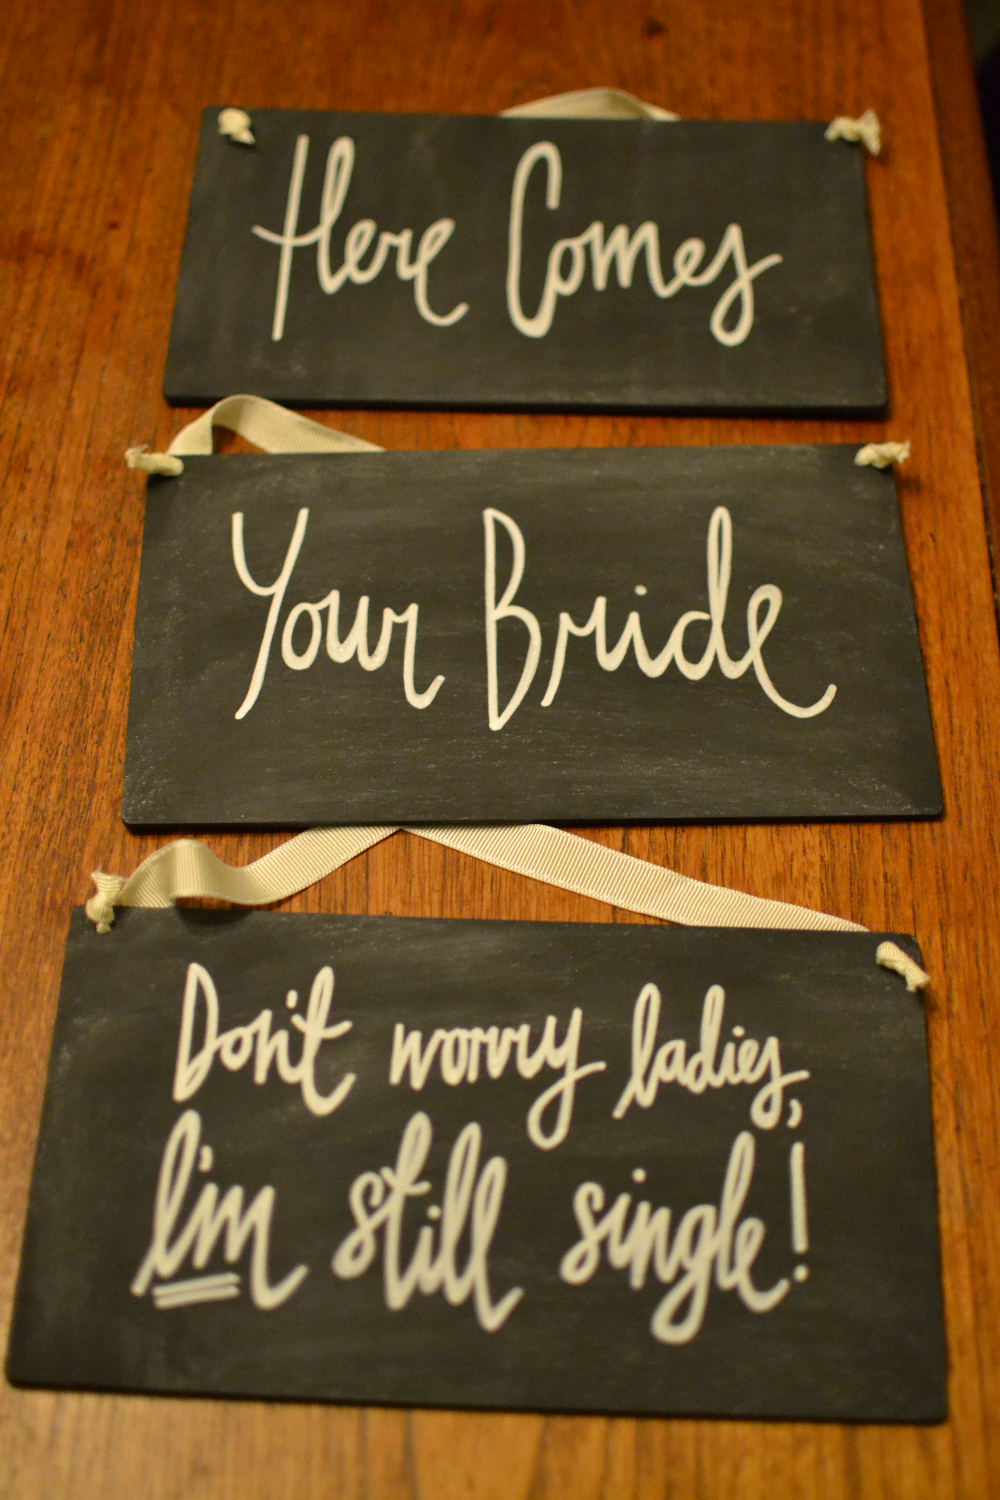 Here comes bride hanging chalkboards